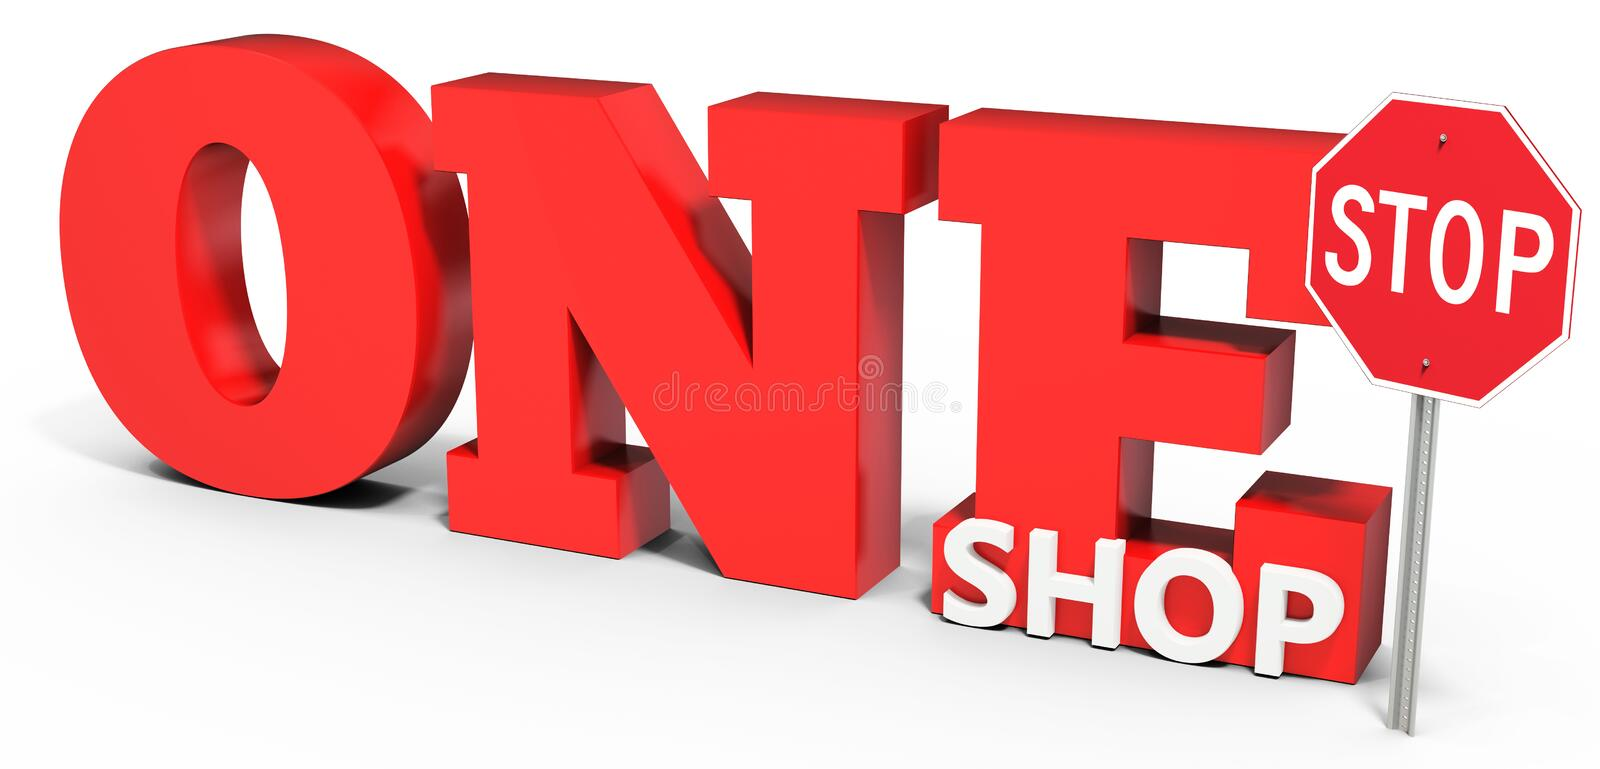 Unique 3d one stop shop sign stock illustration. Illustration of object  XA13